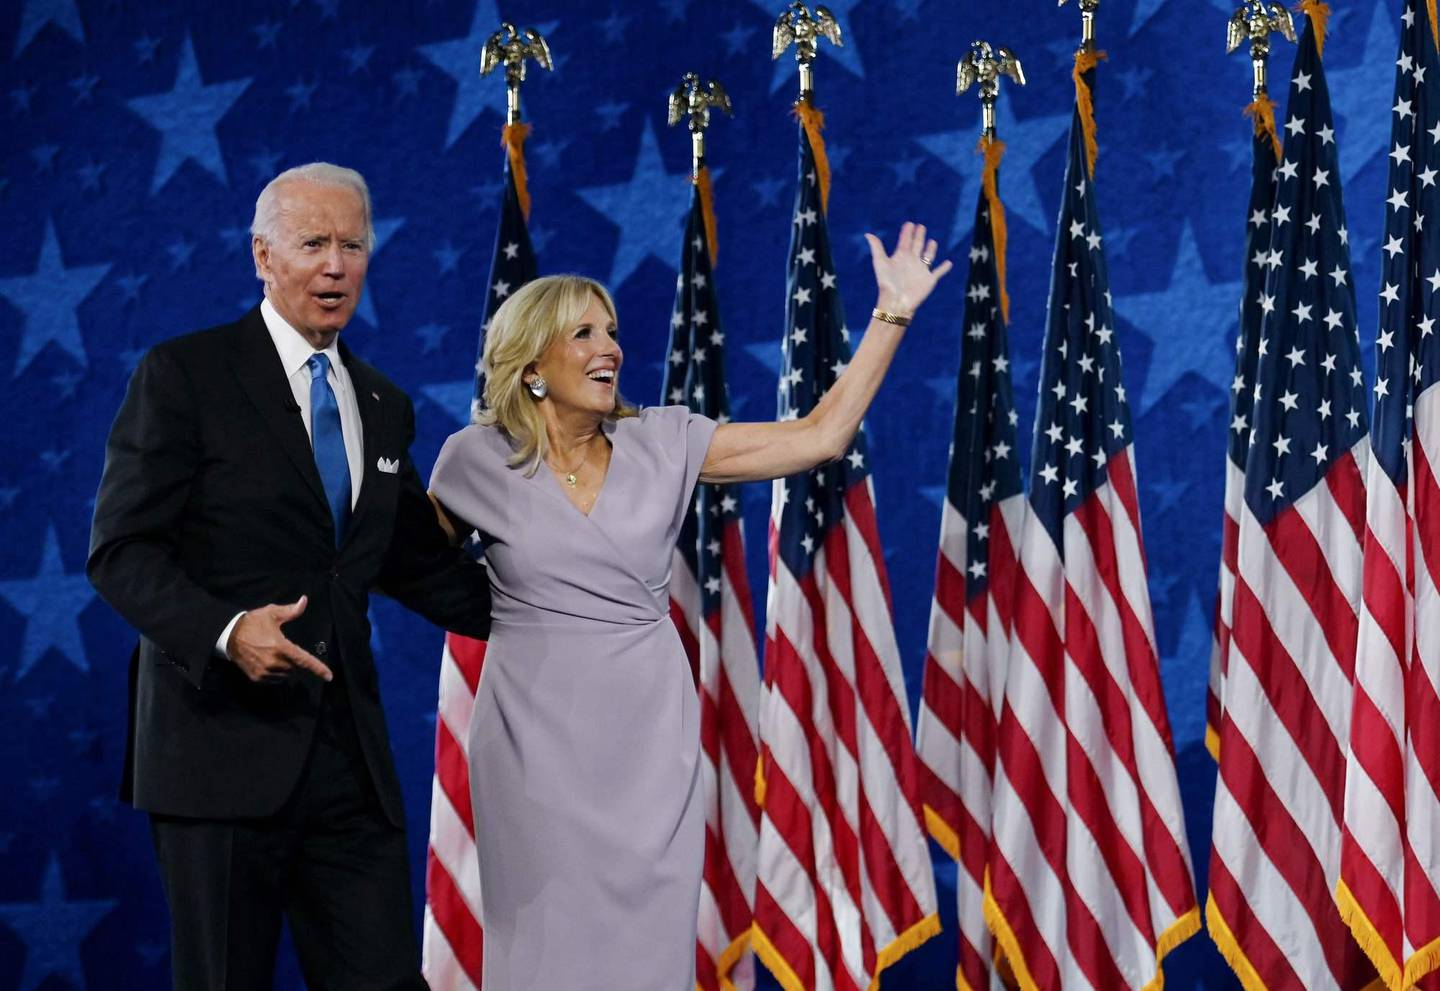 (FILES) In this file photo taken on August 20, 2020 Jill Biden and husband former vice-president and Democratic presidential nominee Joe Biden stand on stage at the Chase Center in Wilmington, Delaware, at the conclusion of the Democratic National Convention, held virtually amid the novel coronavirus pandemic. - He has suffered profound personal tragedy and seen his earlier political ambitions thwarted, but veteran Democrat Joe Biden hopes his pledge to unify Americans will deliver him the presidency after nearly half a century in Washington (Photo by Olivier DOULIERY / AFP)